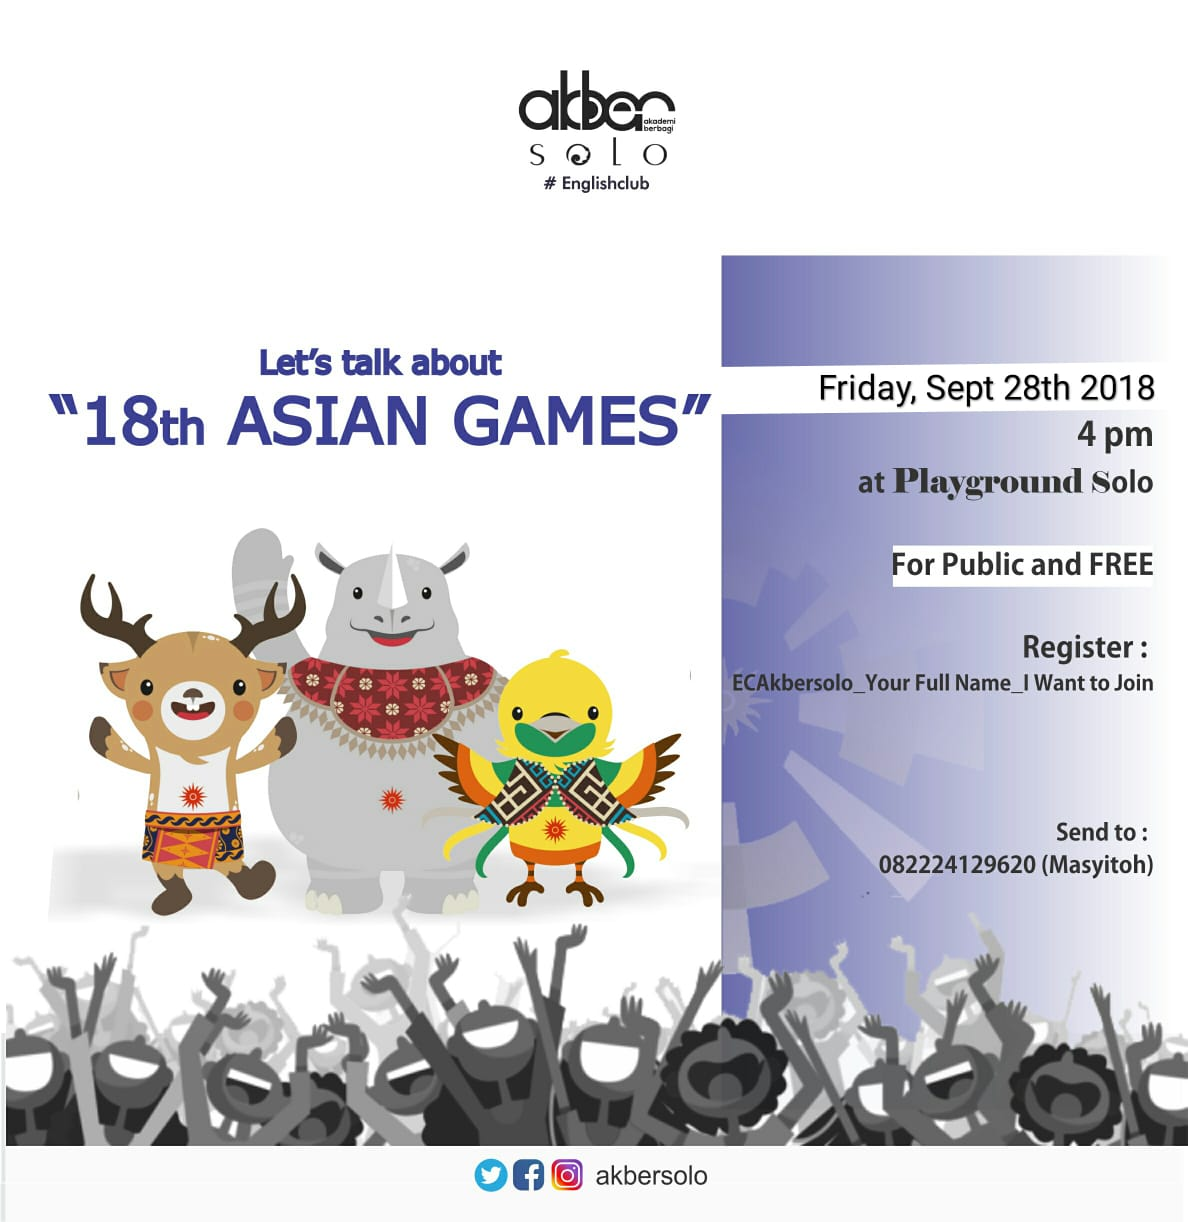 Solo: #EnglishClub – 18th Asian Games